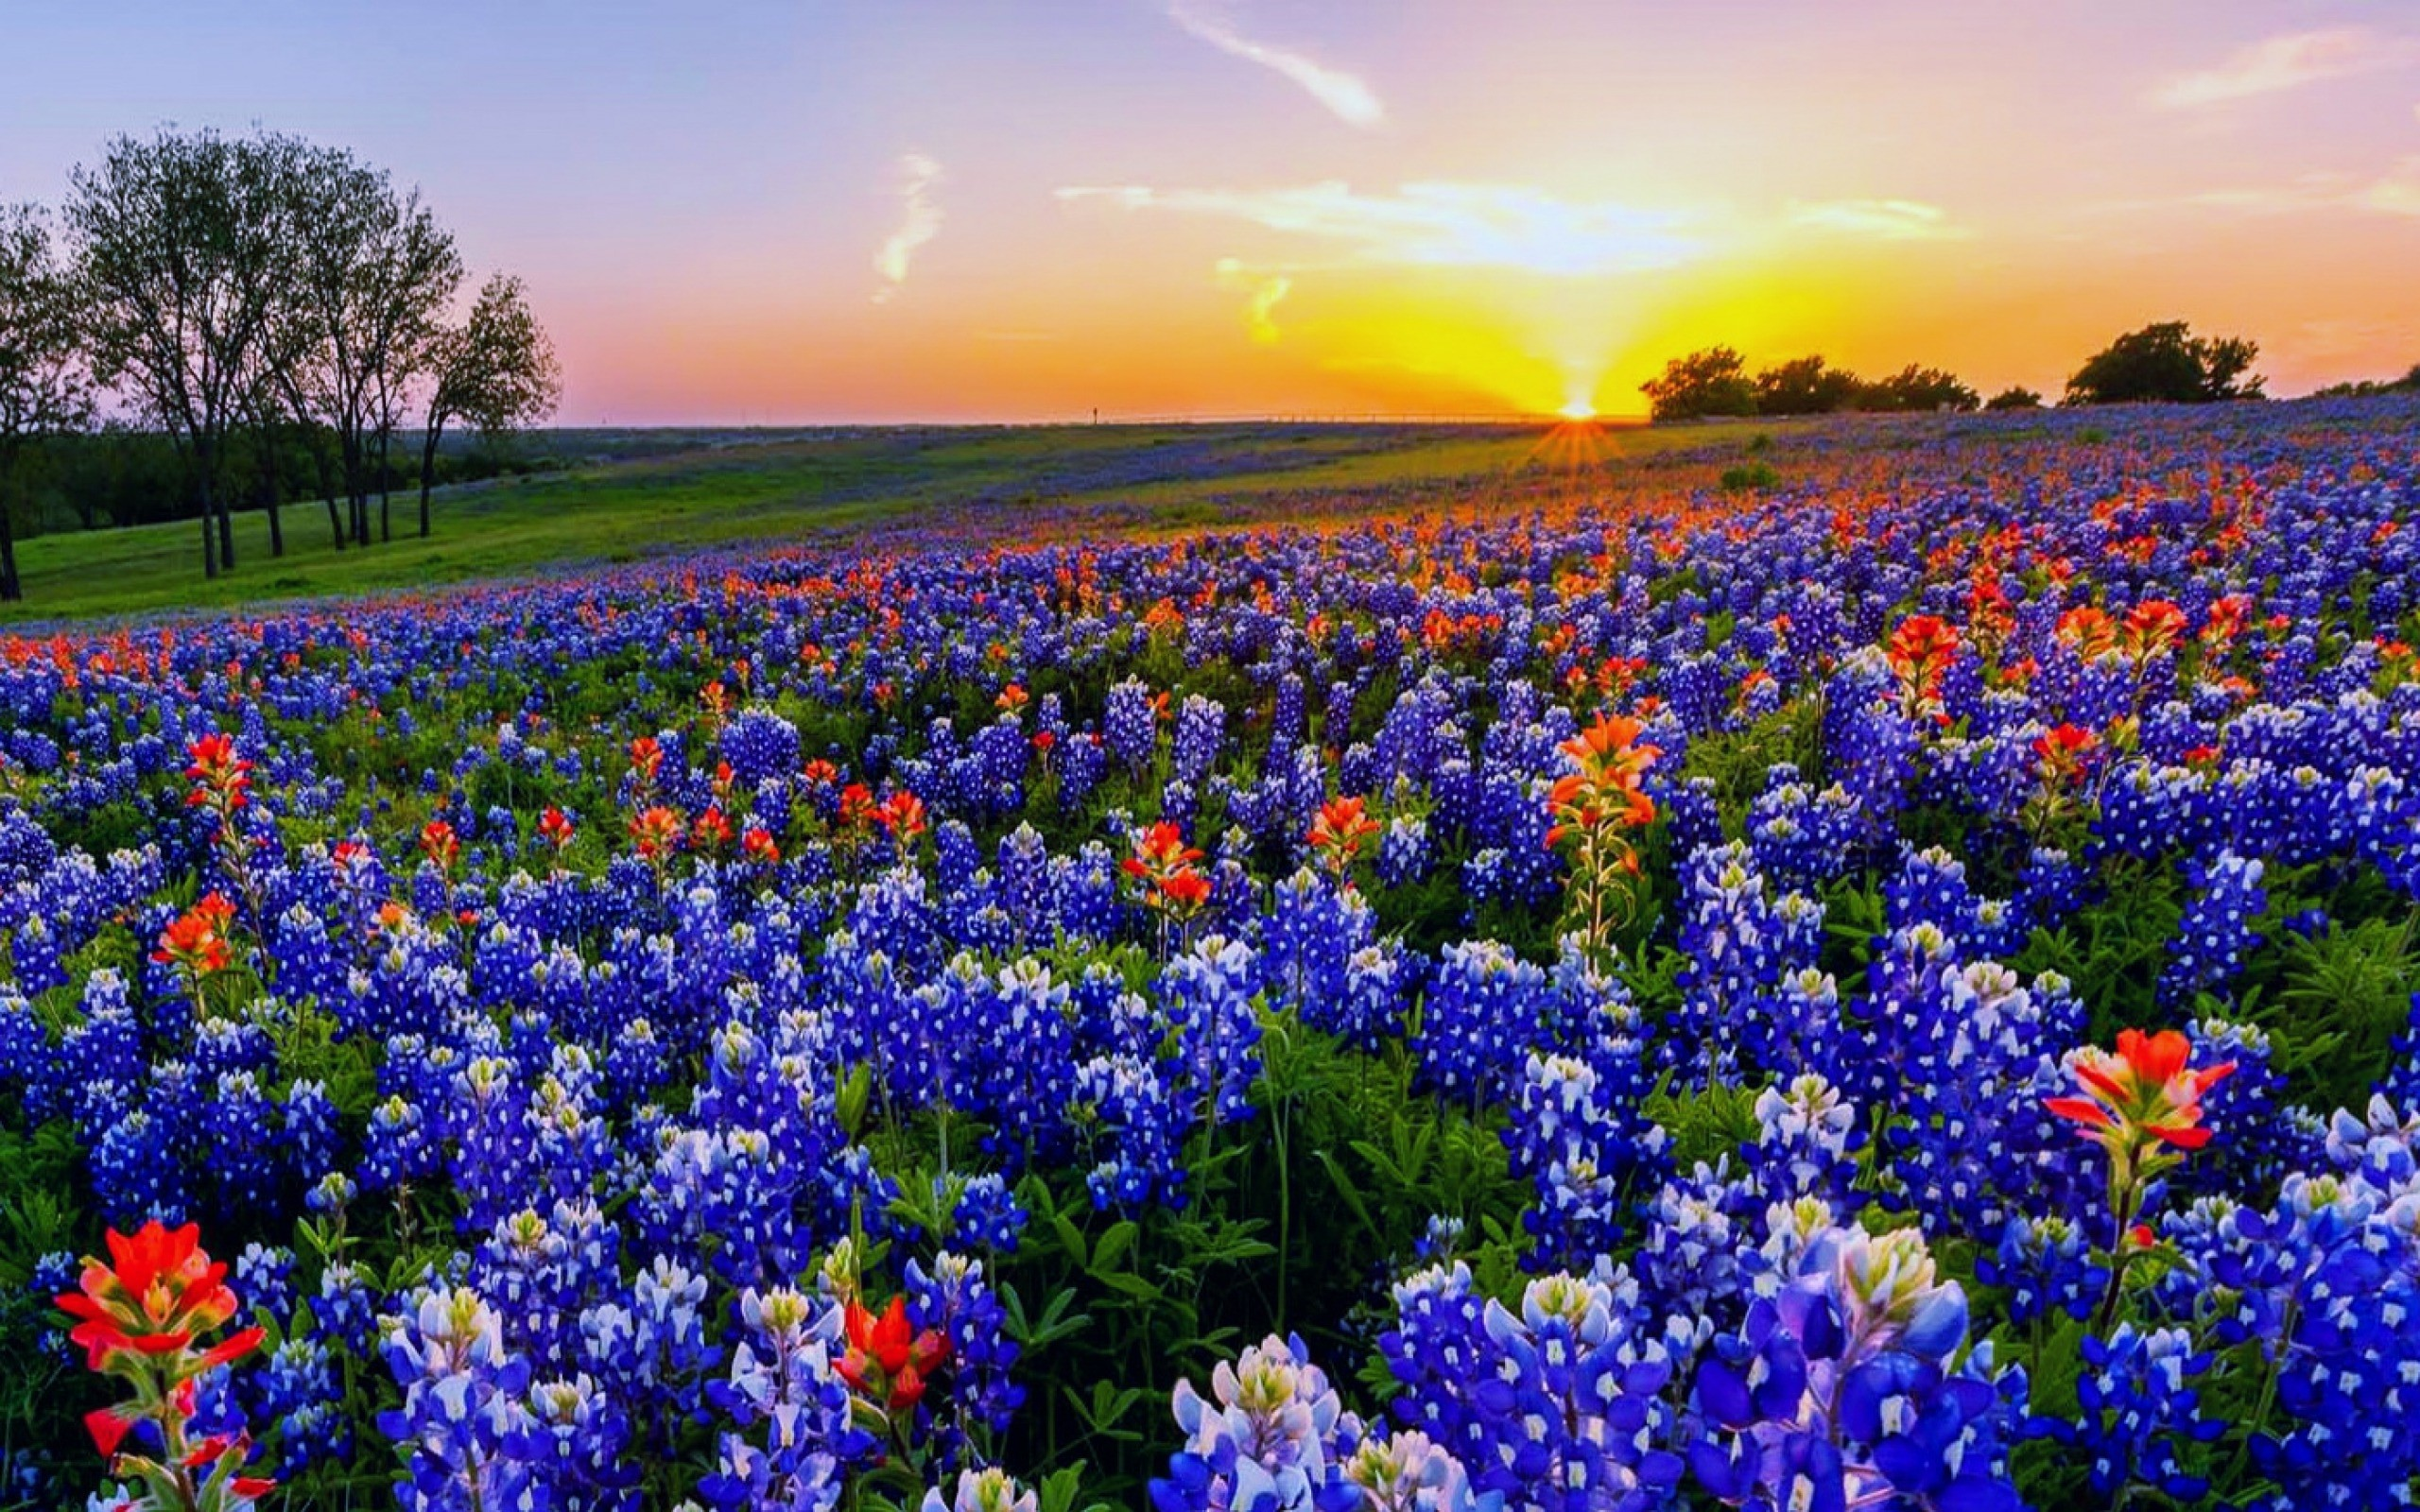 Res: 2560x1600, Texas Bluebonnets Wallpapers 3 - 2560 X 1600